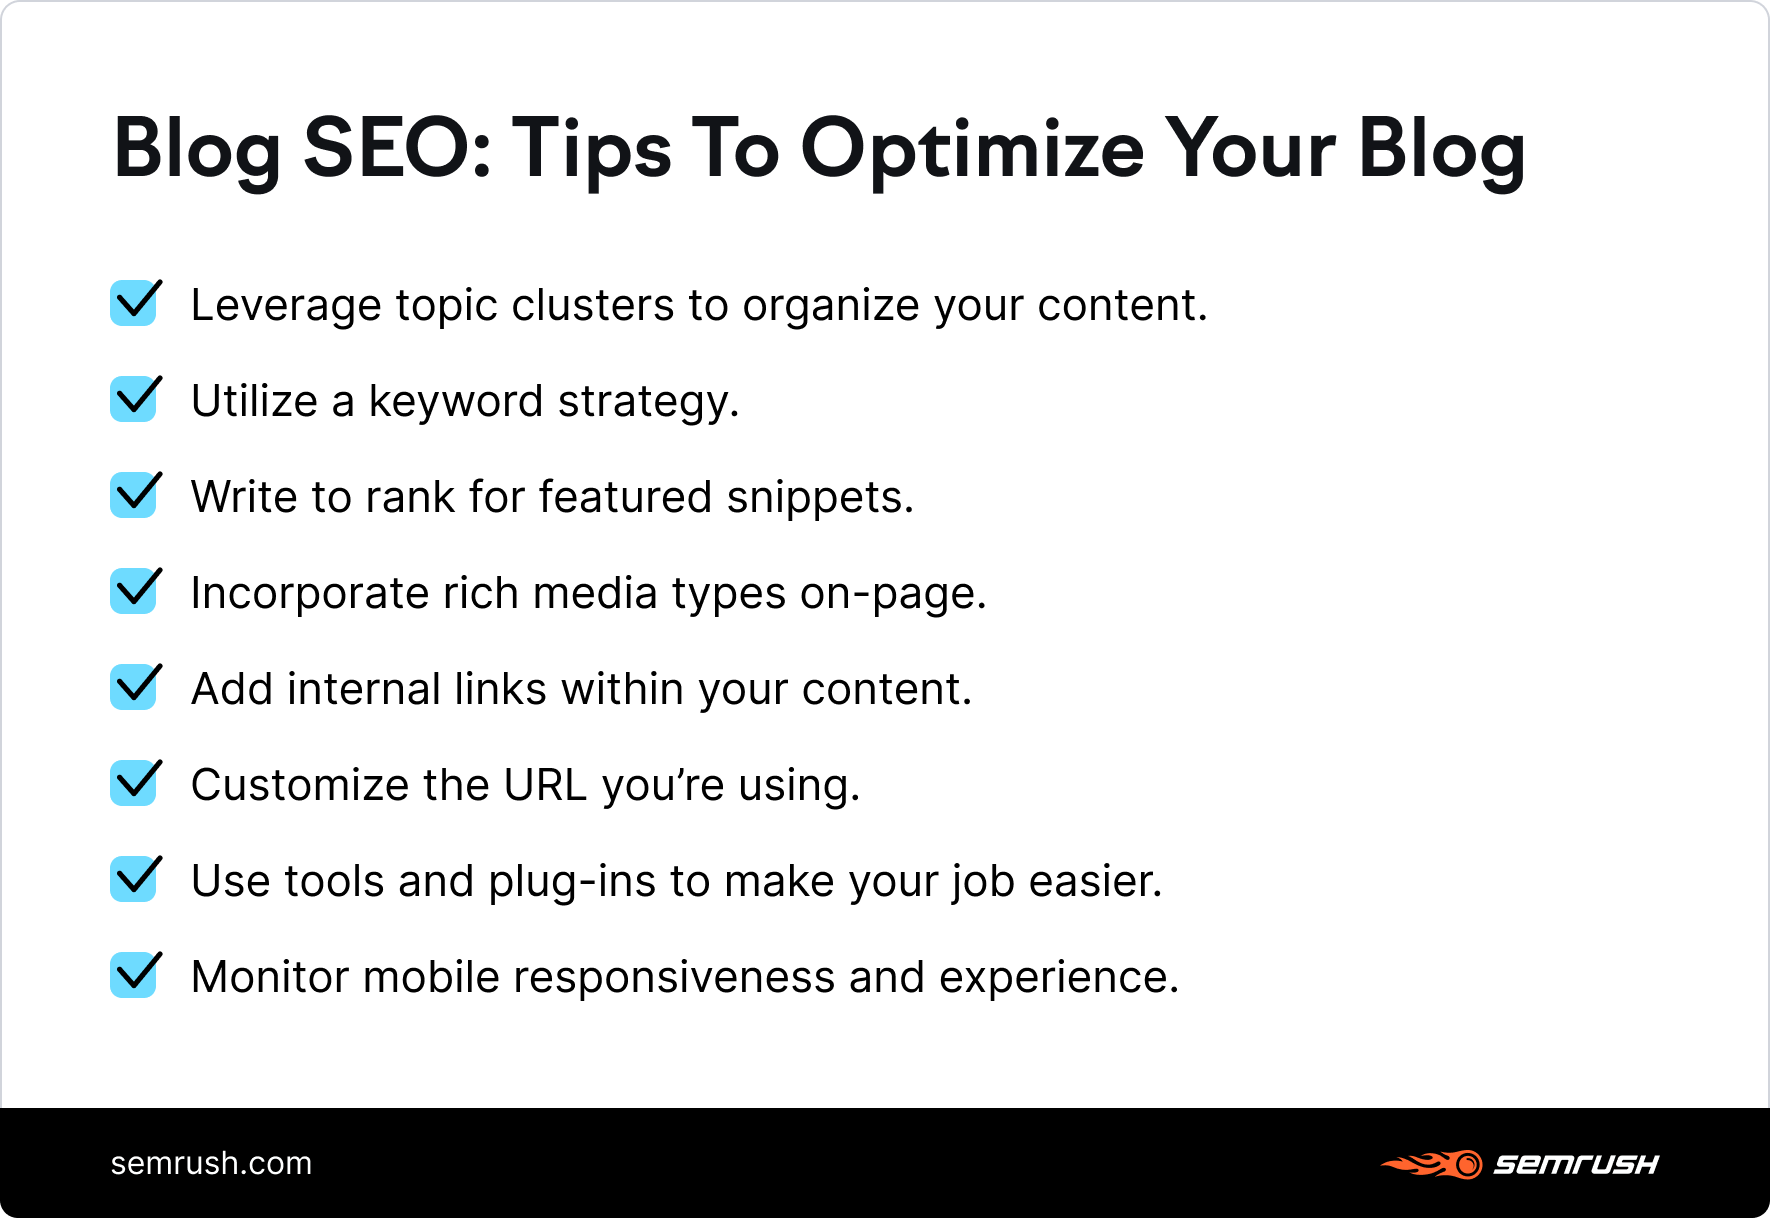 Blog SEO tips list infographic